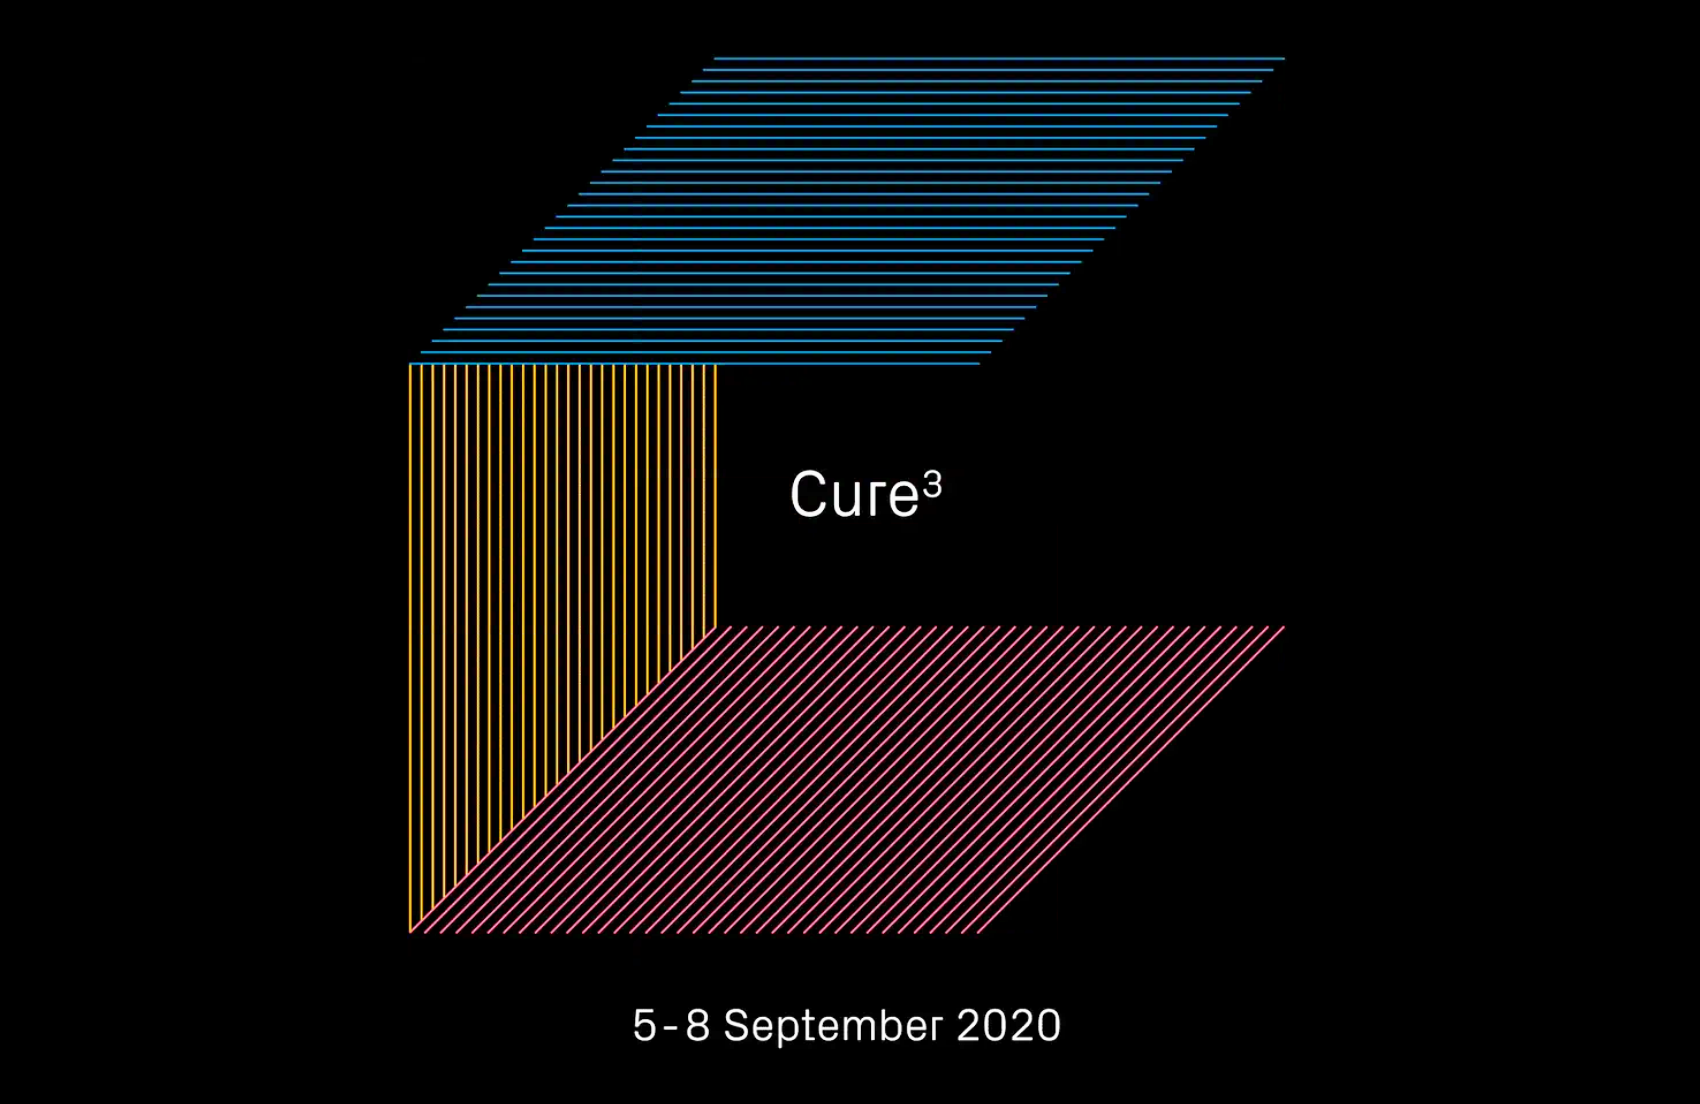 Cure3 2020